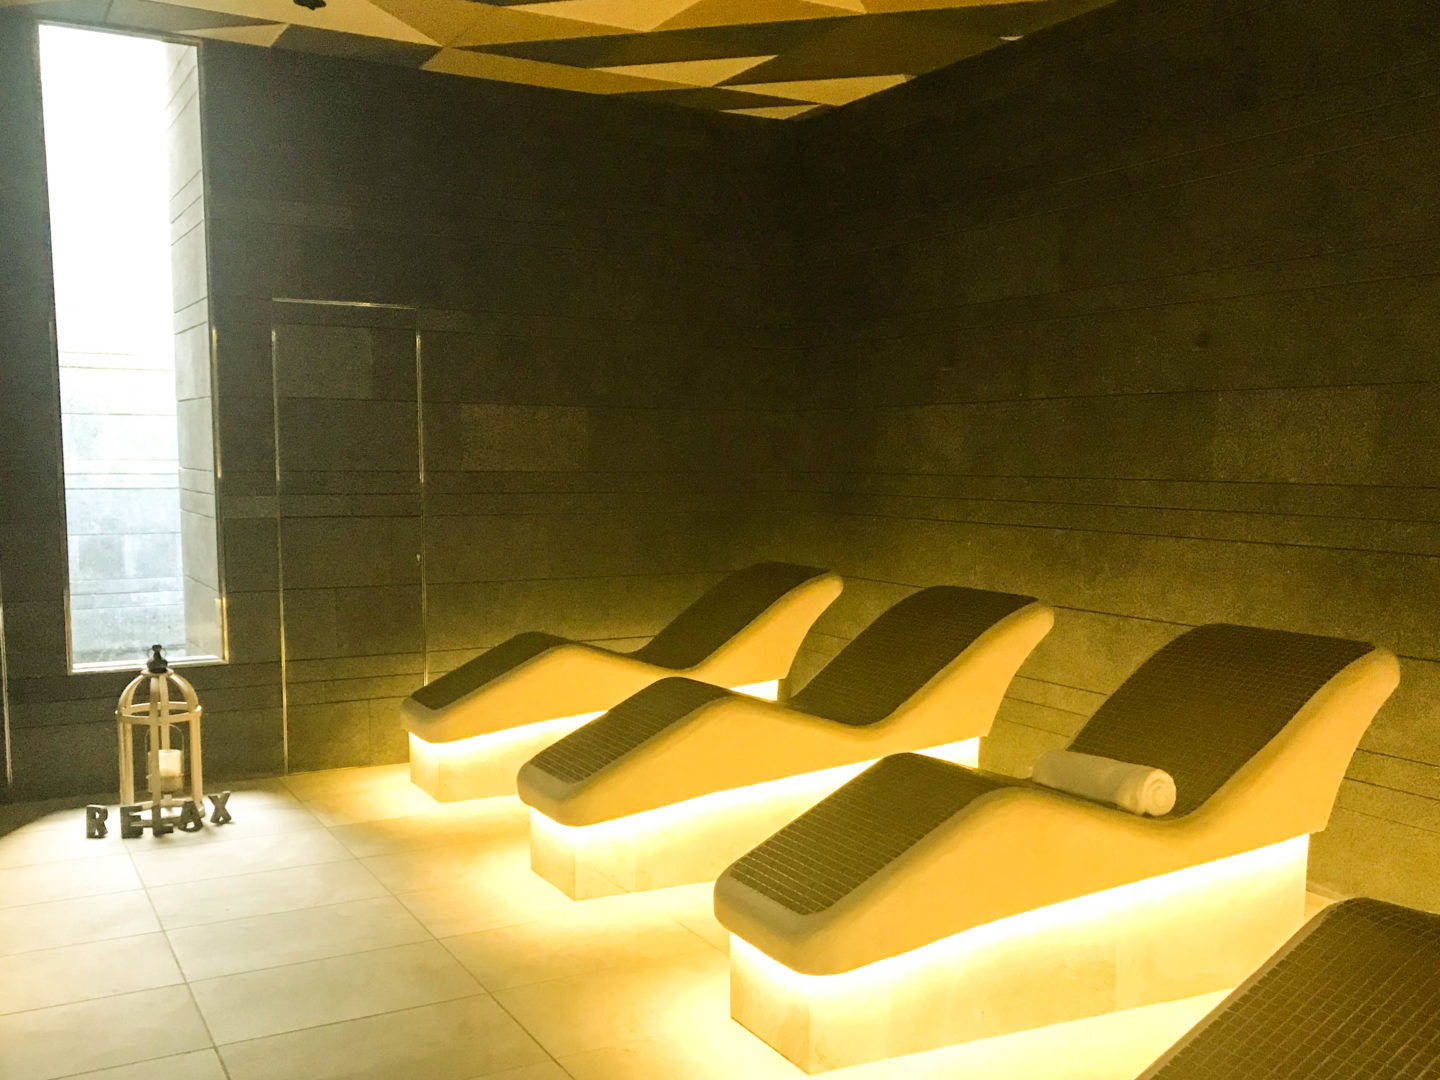 Aequor Spa And Massage, Healing Mind, Body & Soul - Tapas in